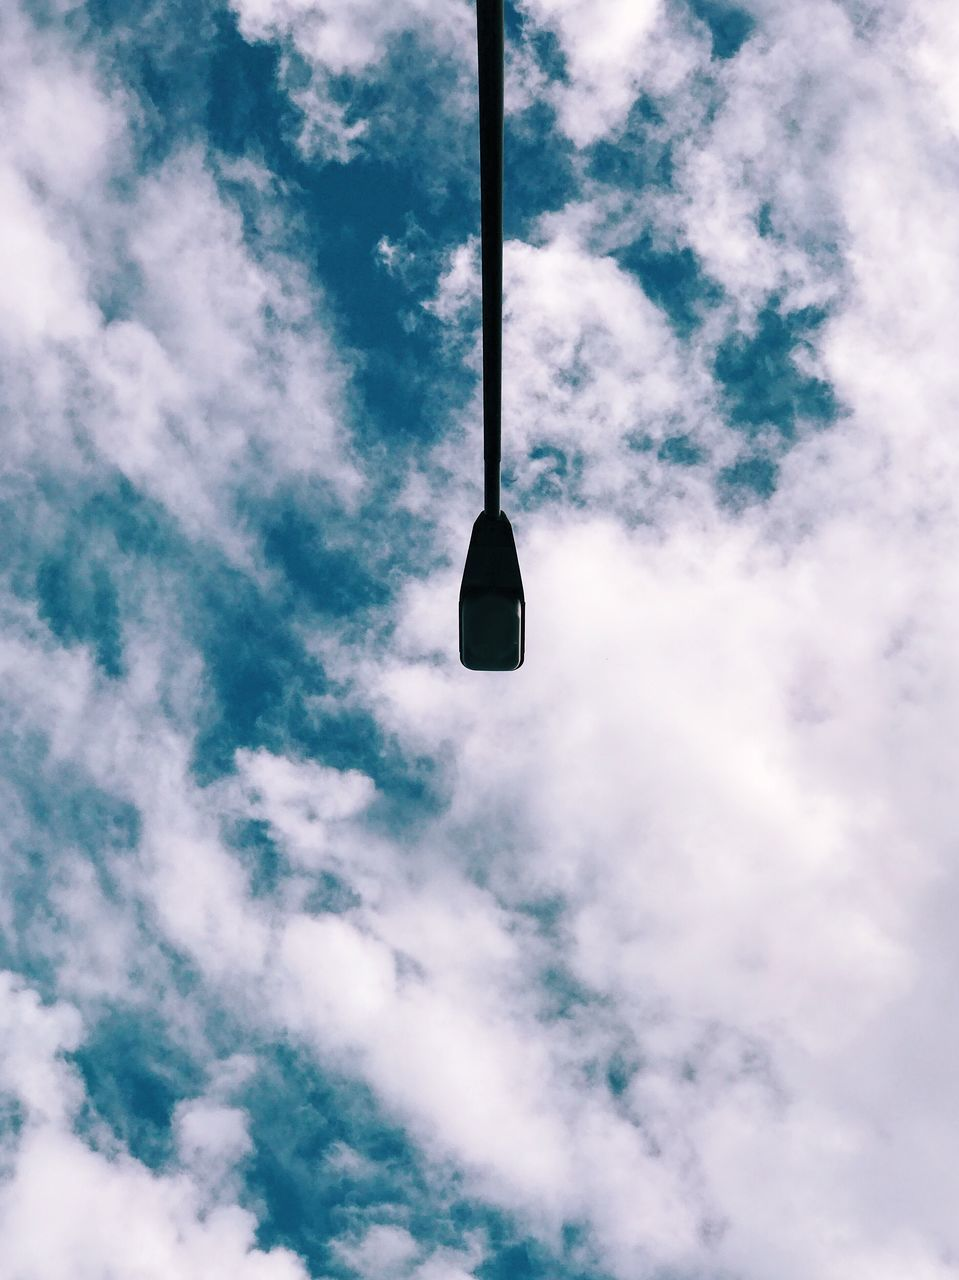 Low Angle View Of Street Light Against Cloudy Sky During Sunny Day